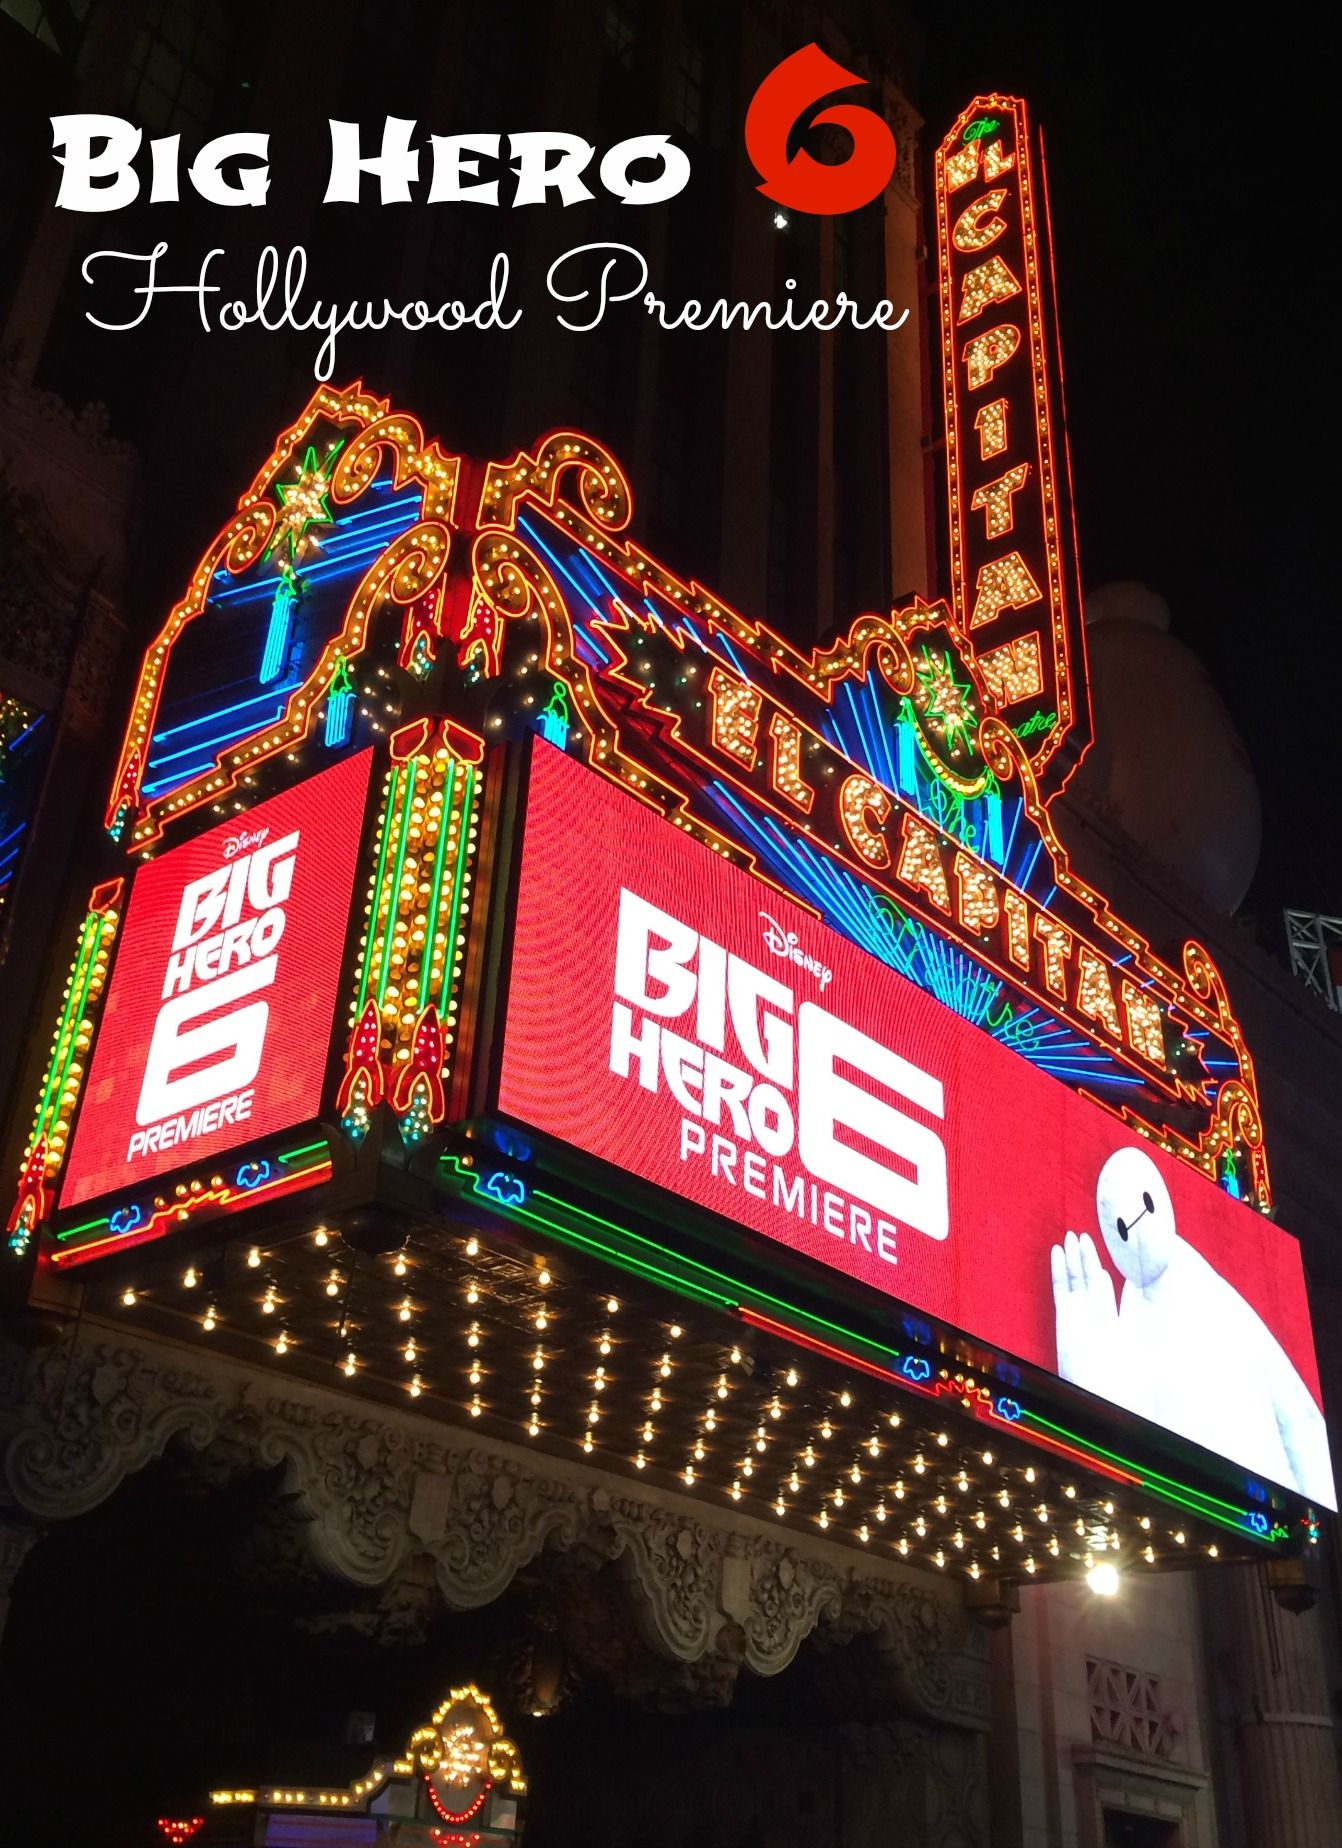 Pictures from the red carpet at the Hollywood Premiere of Big Hero 6 Movie. #BigHero6Event